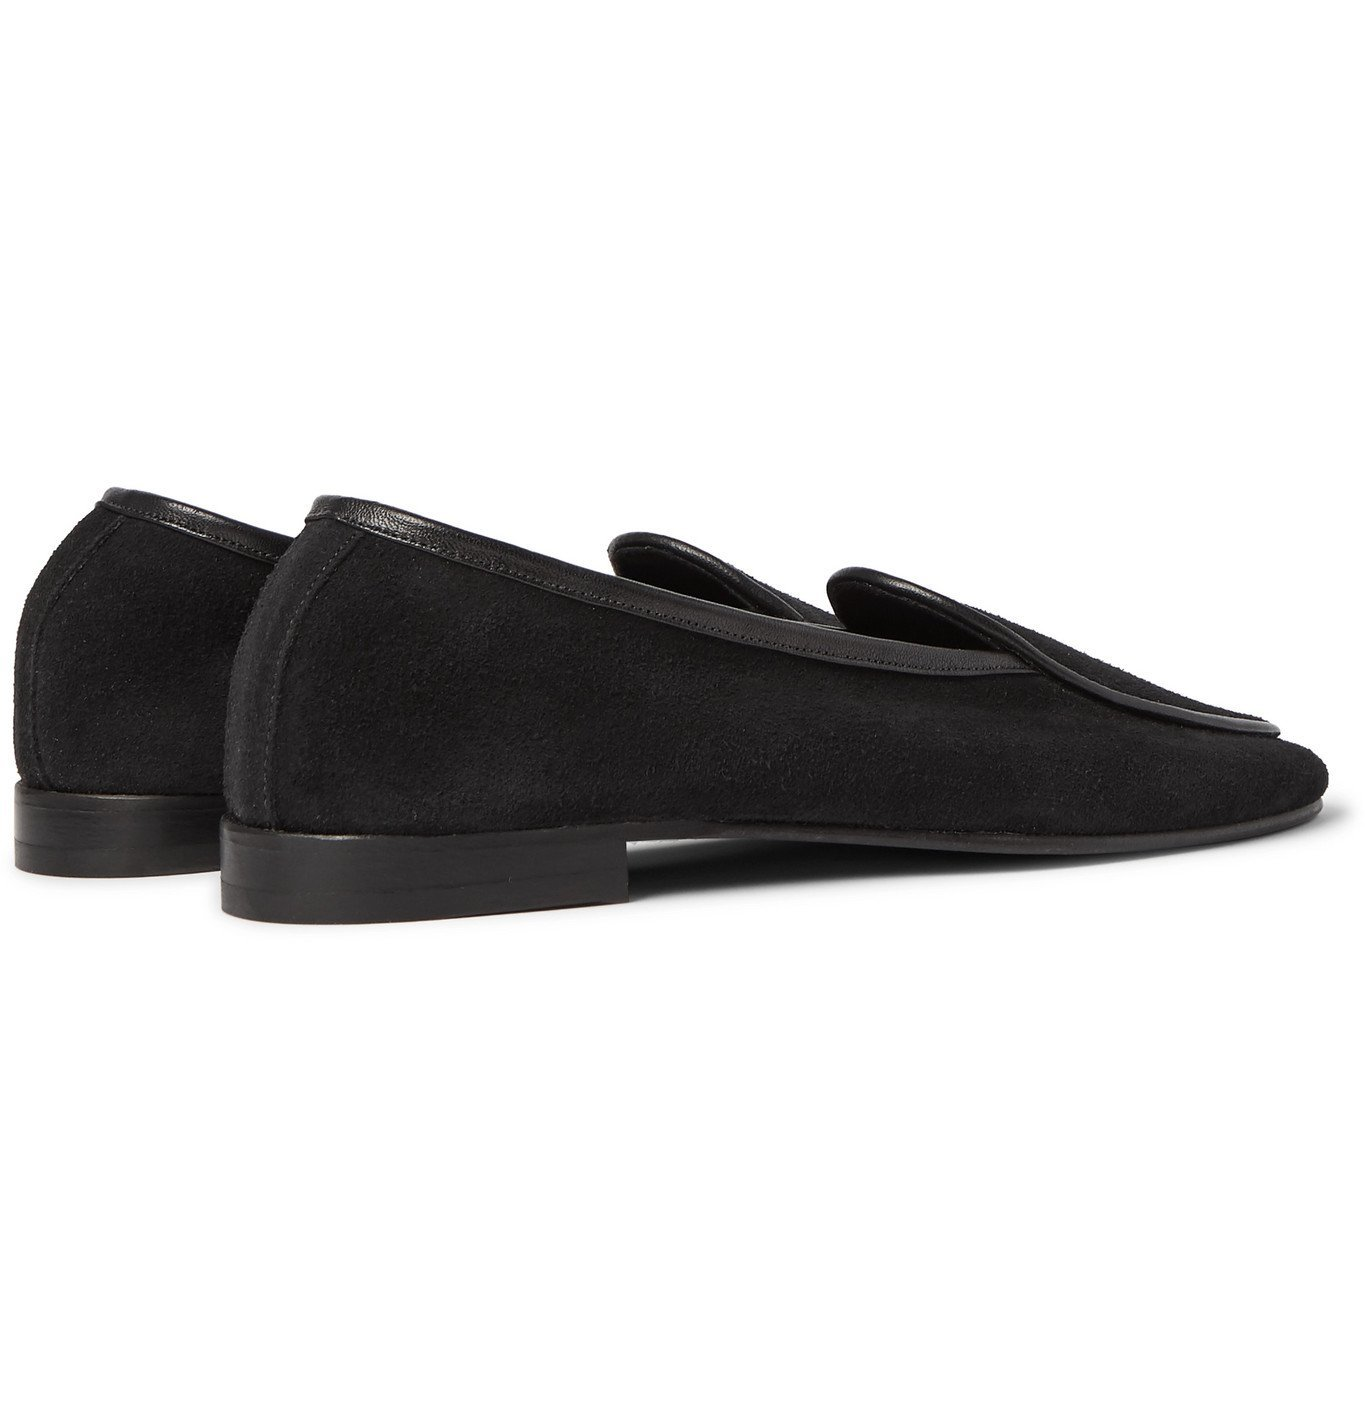 George Cleverley - Hampton Leather-Trimmed Suede Loafers - Black